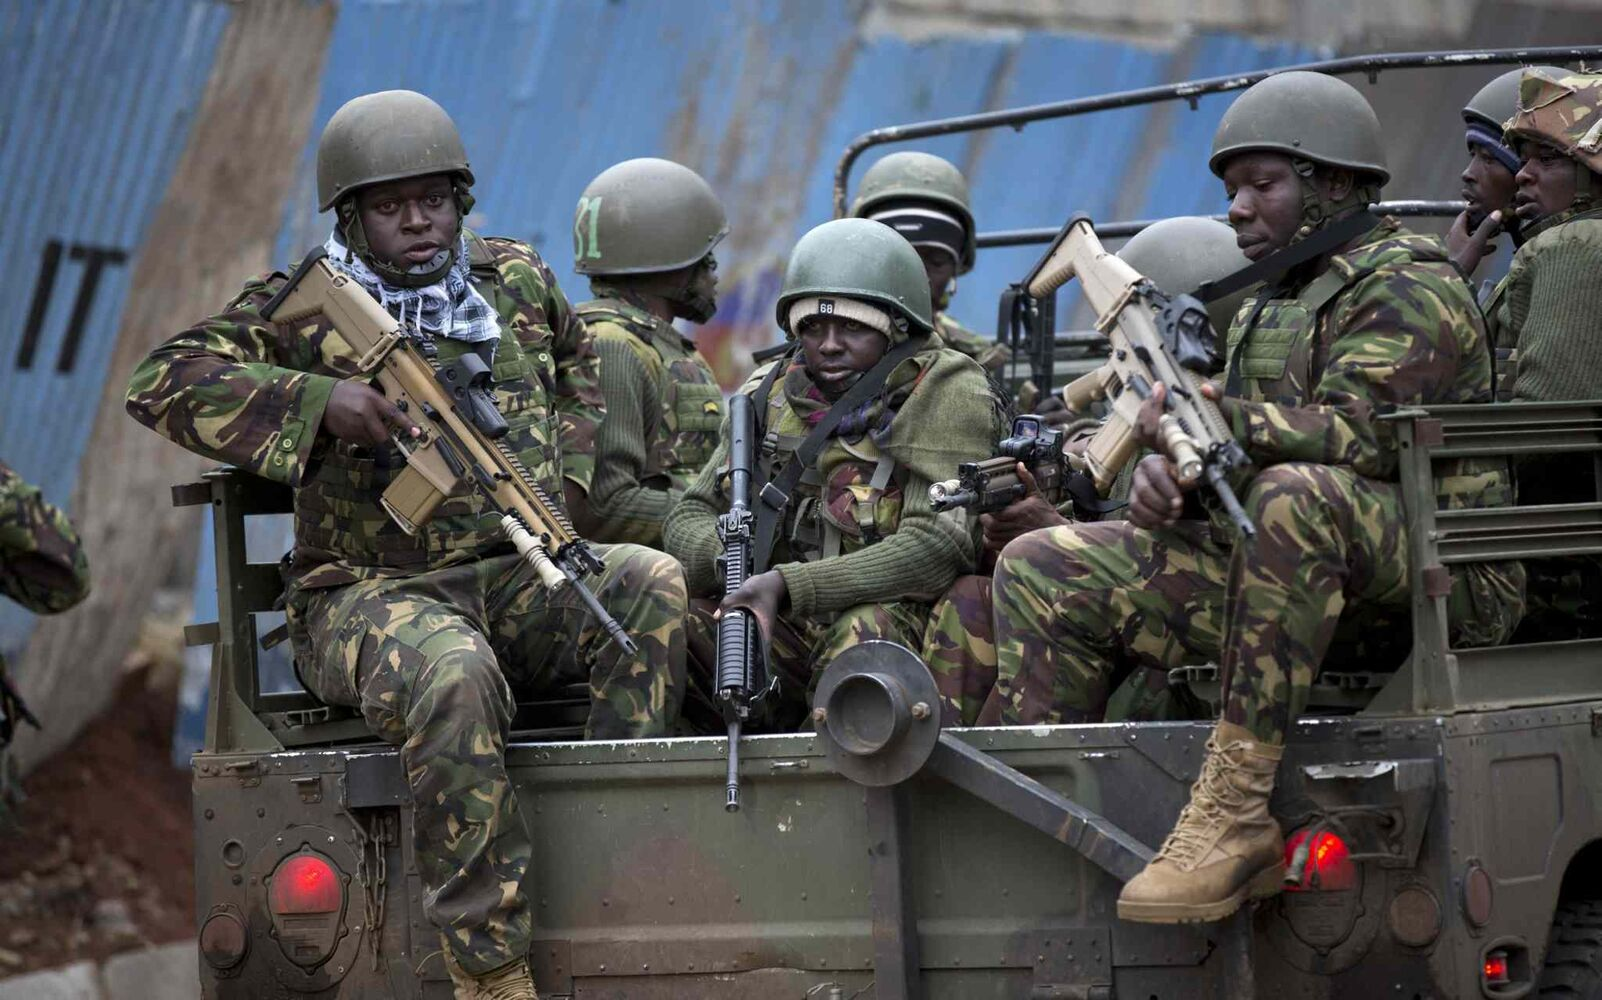 Trucks of soldiers from the Kenya Defence Forces arrive after dawn outside the Westgate Mall in Nairobi, Kenya Sunday. Islamic extremist gunmen lobbed grenades and fired assault rifles inside Nairobi's top mall Saturday, killing dozens and wounding more than 100 in the attack. Early Sunday morning, 12 hours after the attack began, gunmen remained holed up inside the mall with an unknown number of hostages.